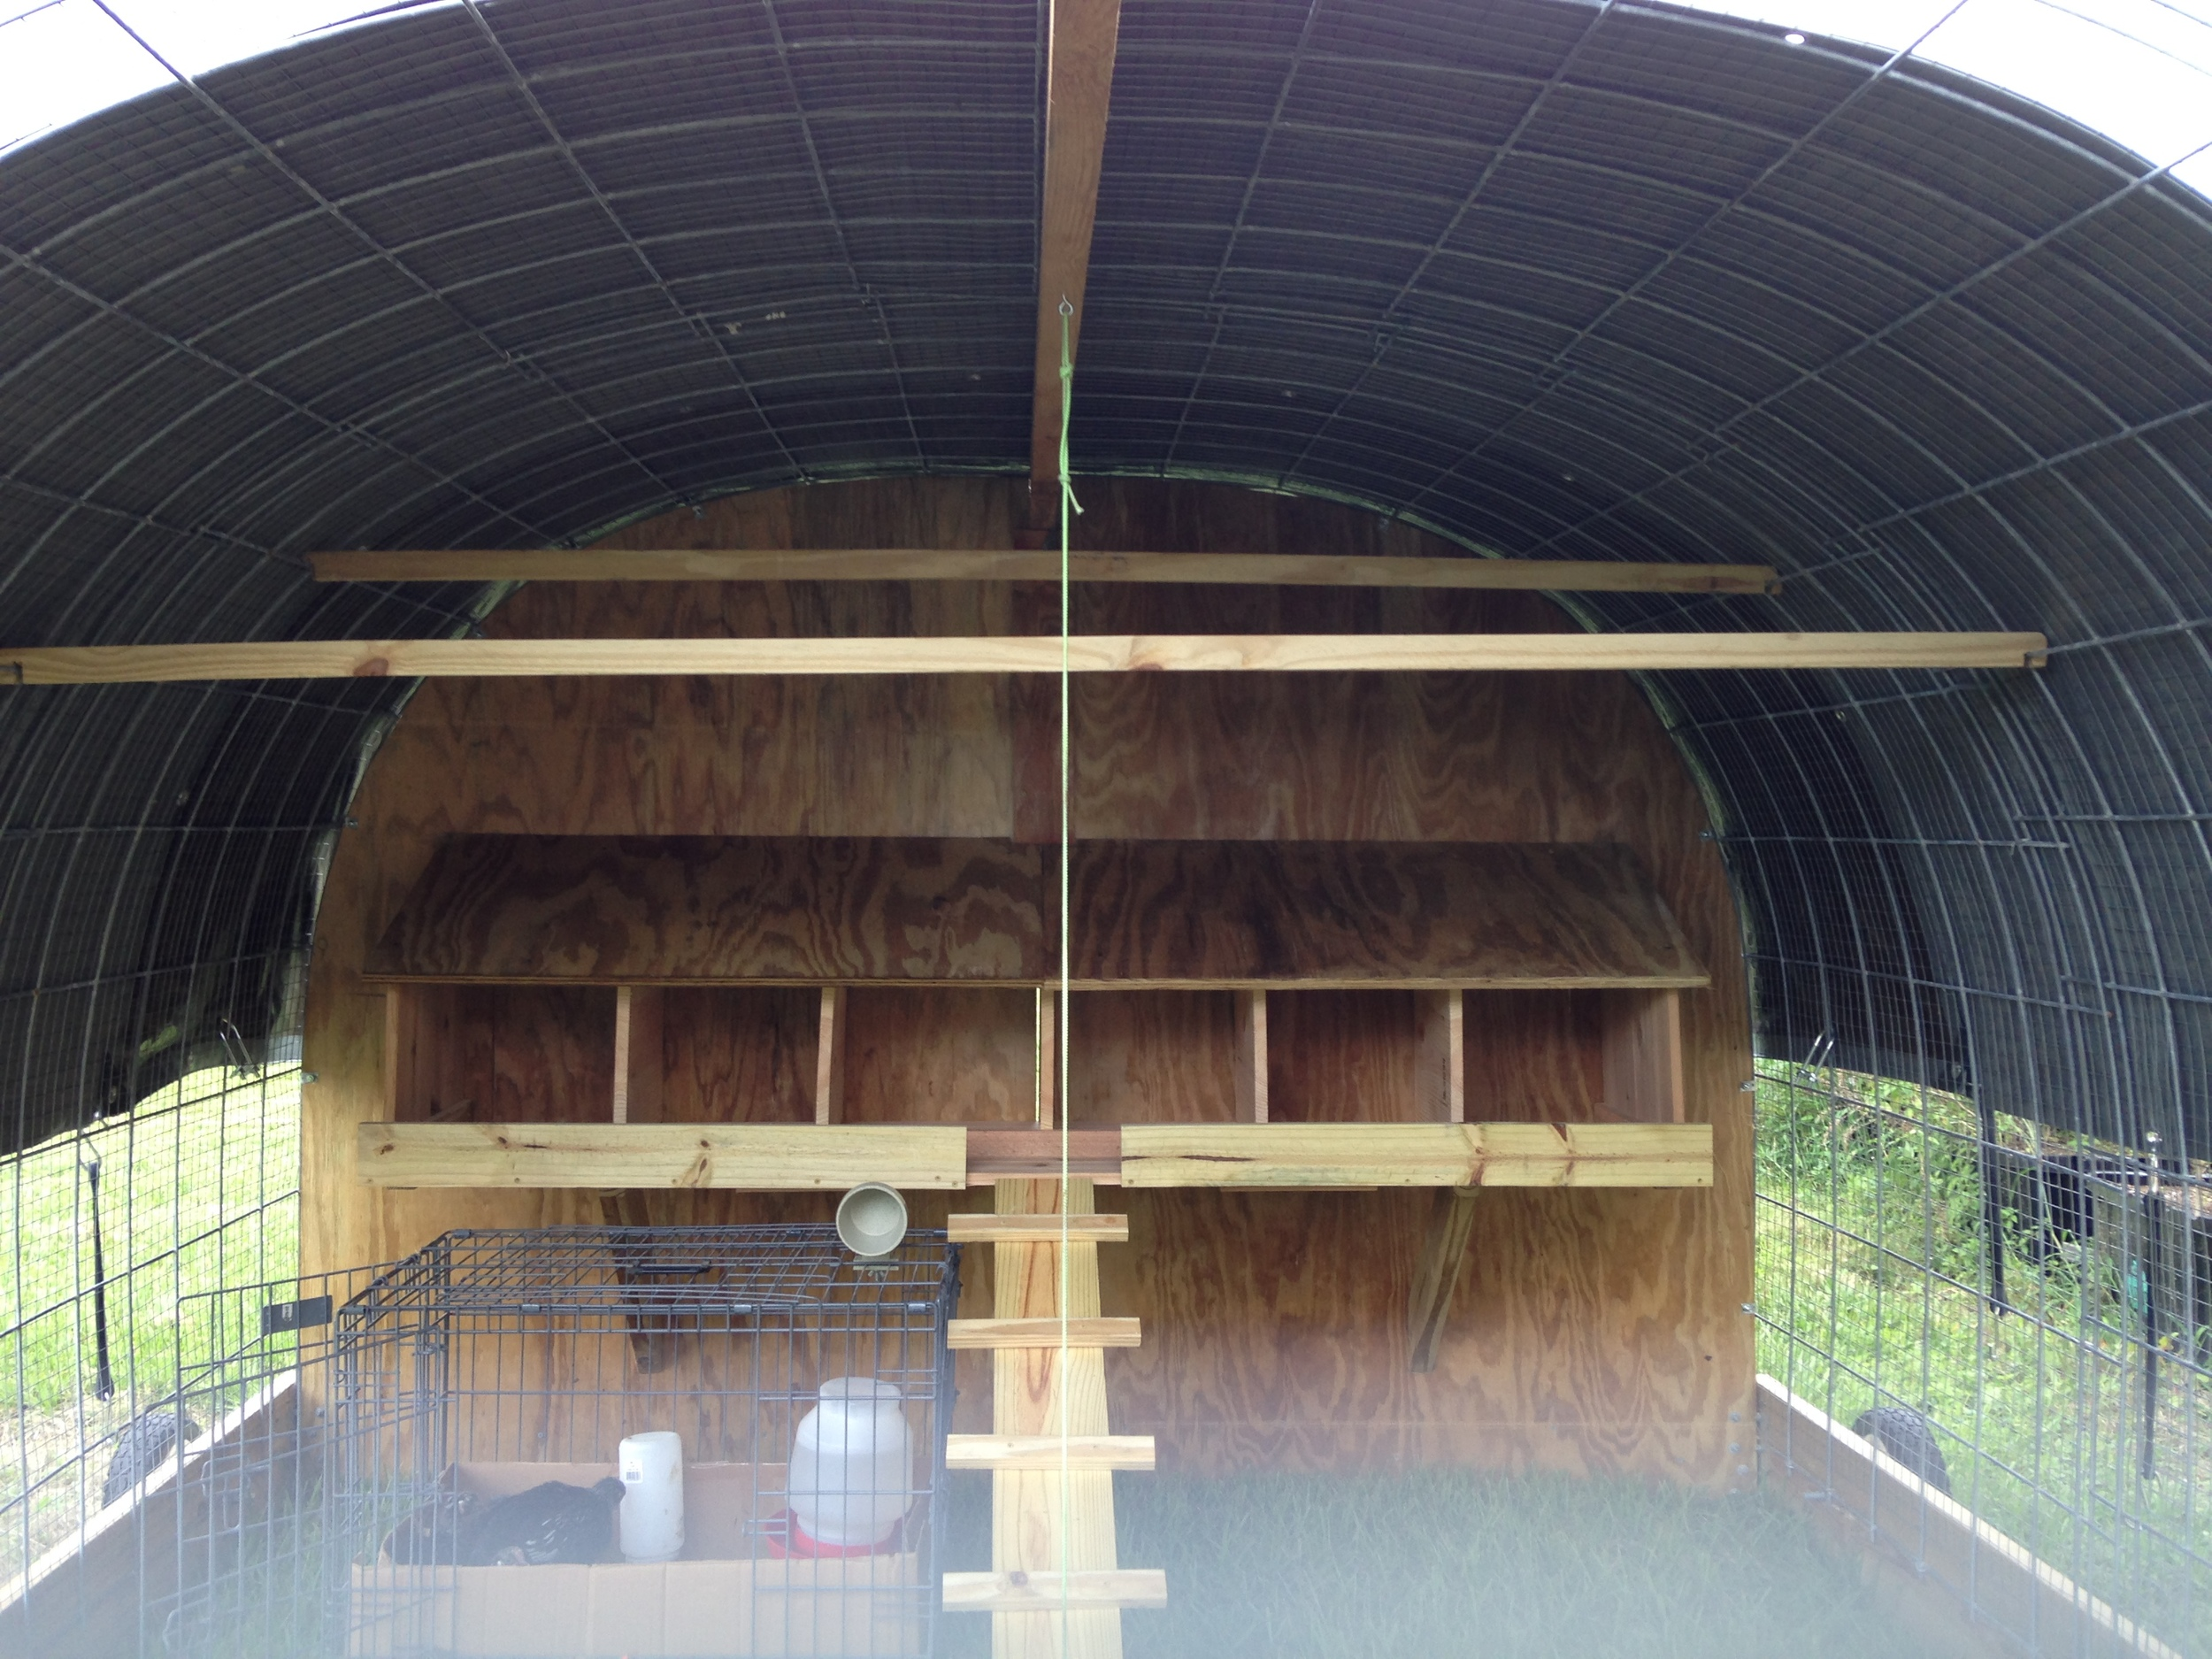 Here is a picture of the inside of the coop just prior to introducing the first of our flock.